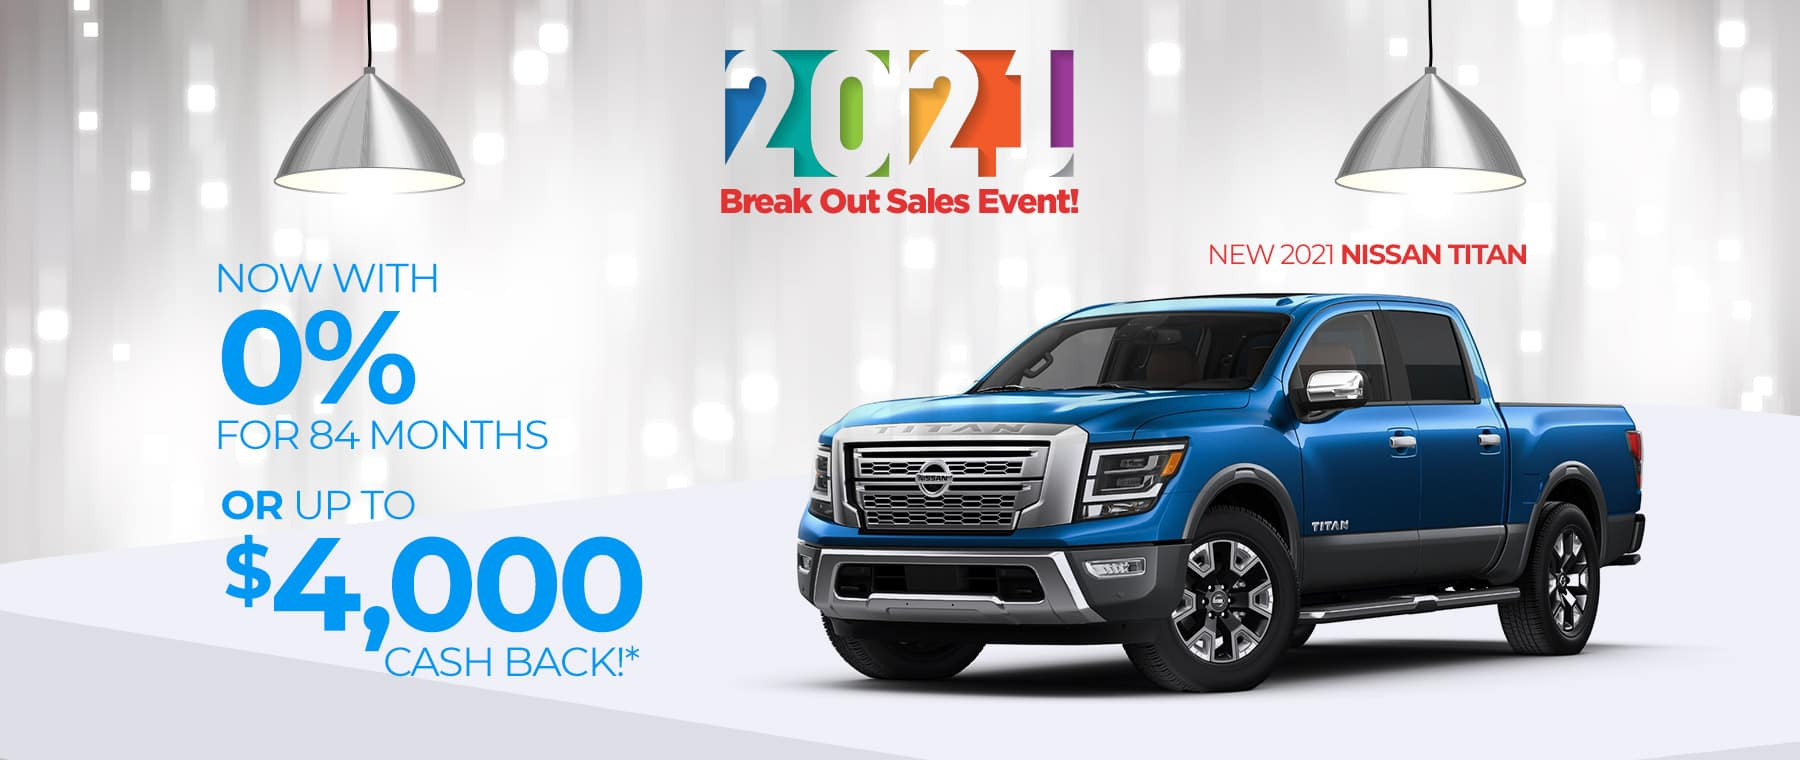 Special finance offer on a new 2021 Nissan Titan near New Albany, Indiana